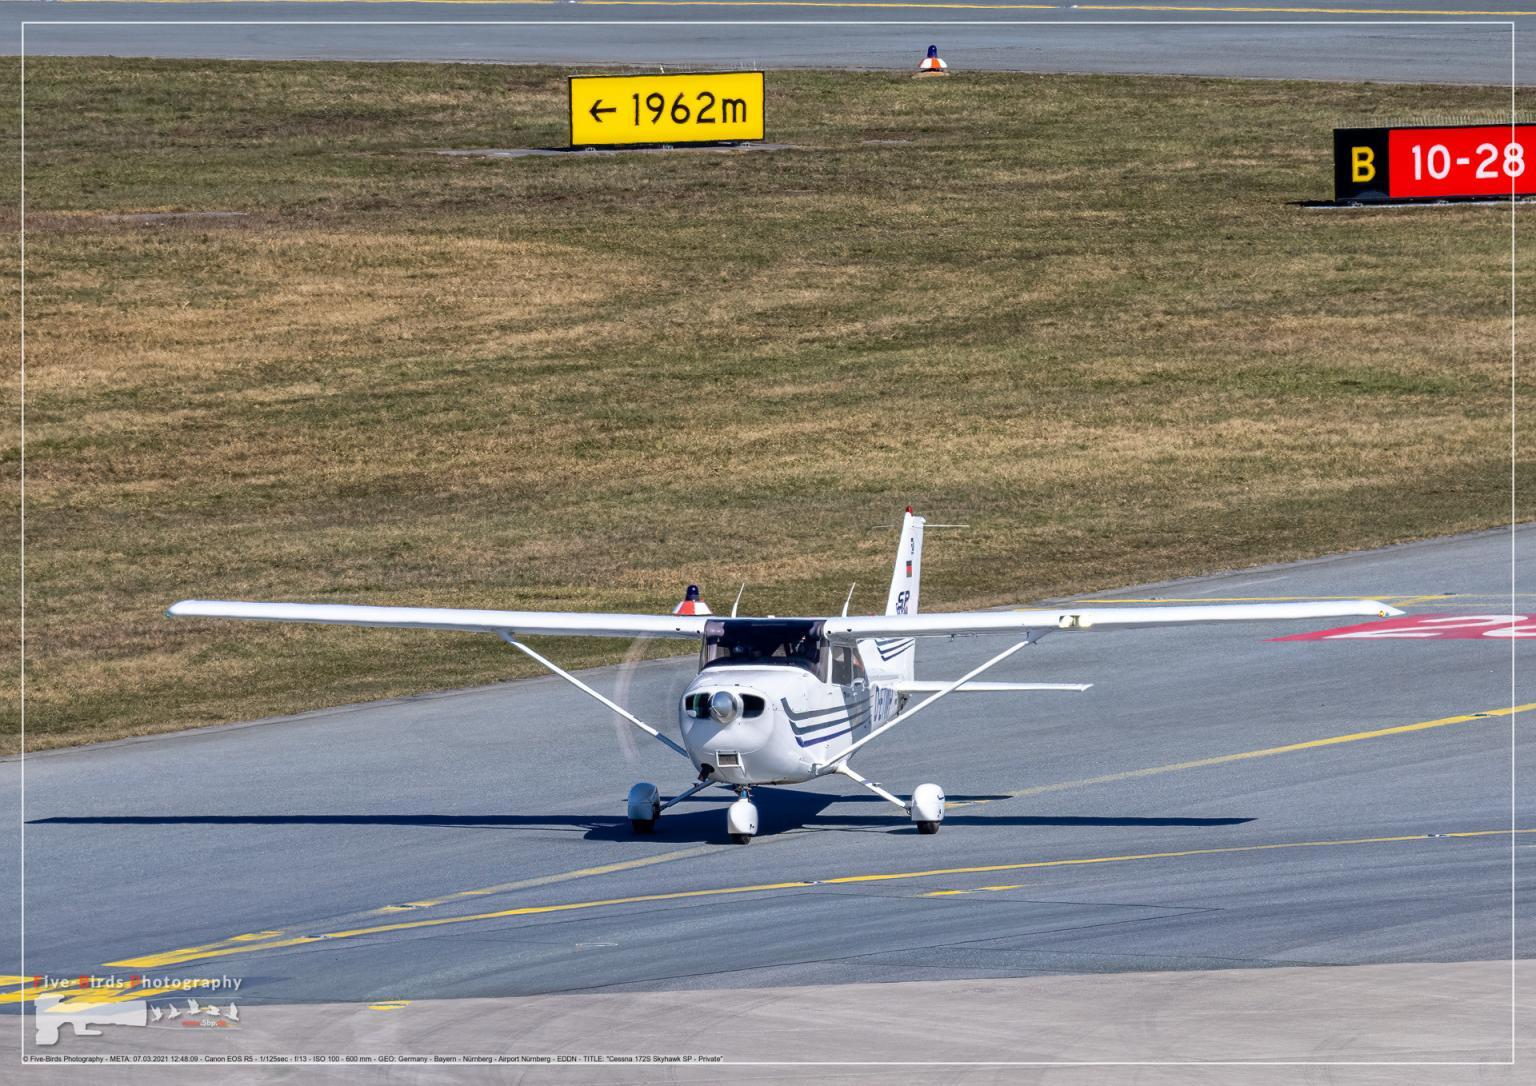 A private propeller plane is heading to the runway at the Albrecht Duerer Airport in Nuremberg in Germany